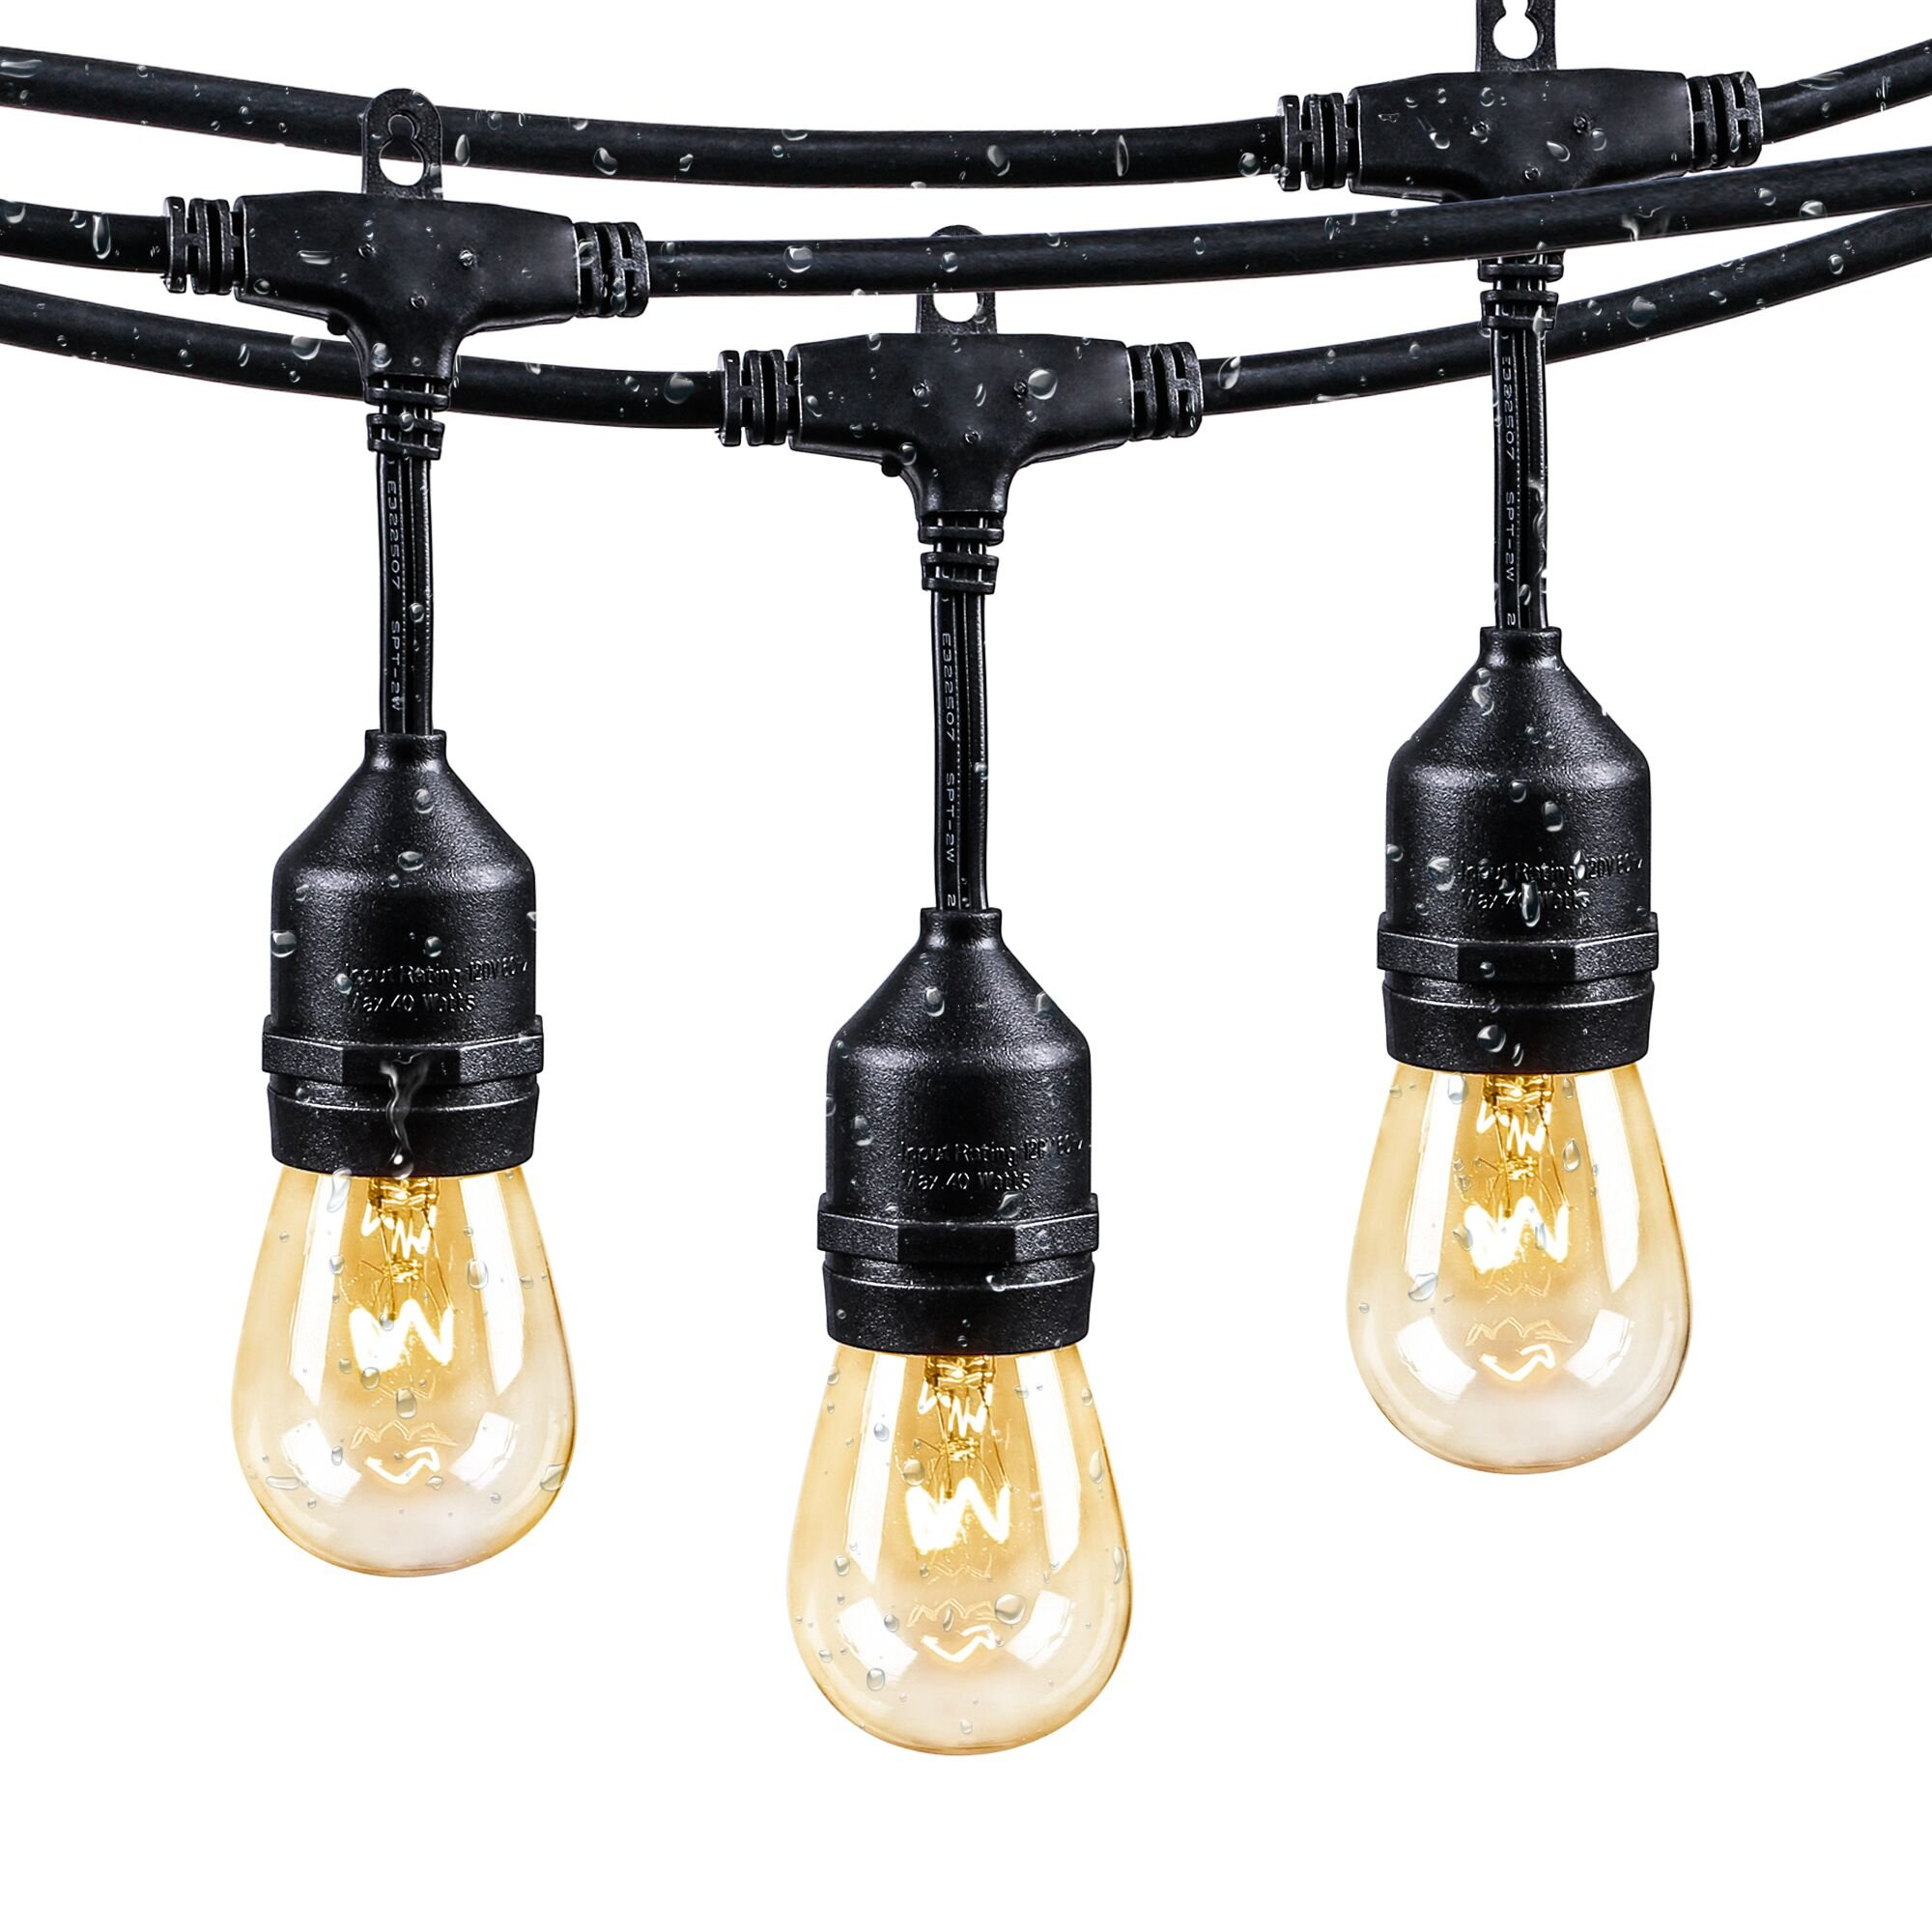 48 Ft String Lights with 15 x E26 Dropped Sockets and 15 x 11 Watt S14 Dimmable Bulbs, Weatherproof Indoor/Outdoor Light Strings, Black